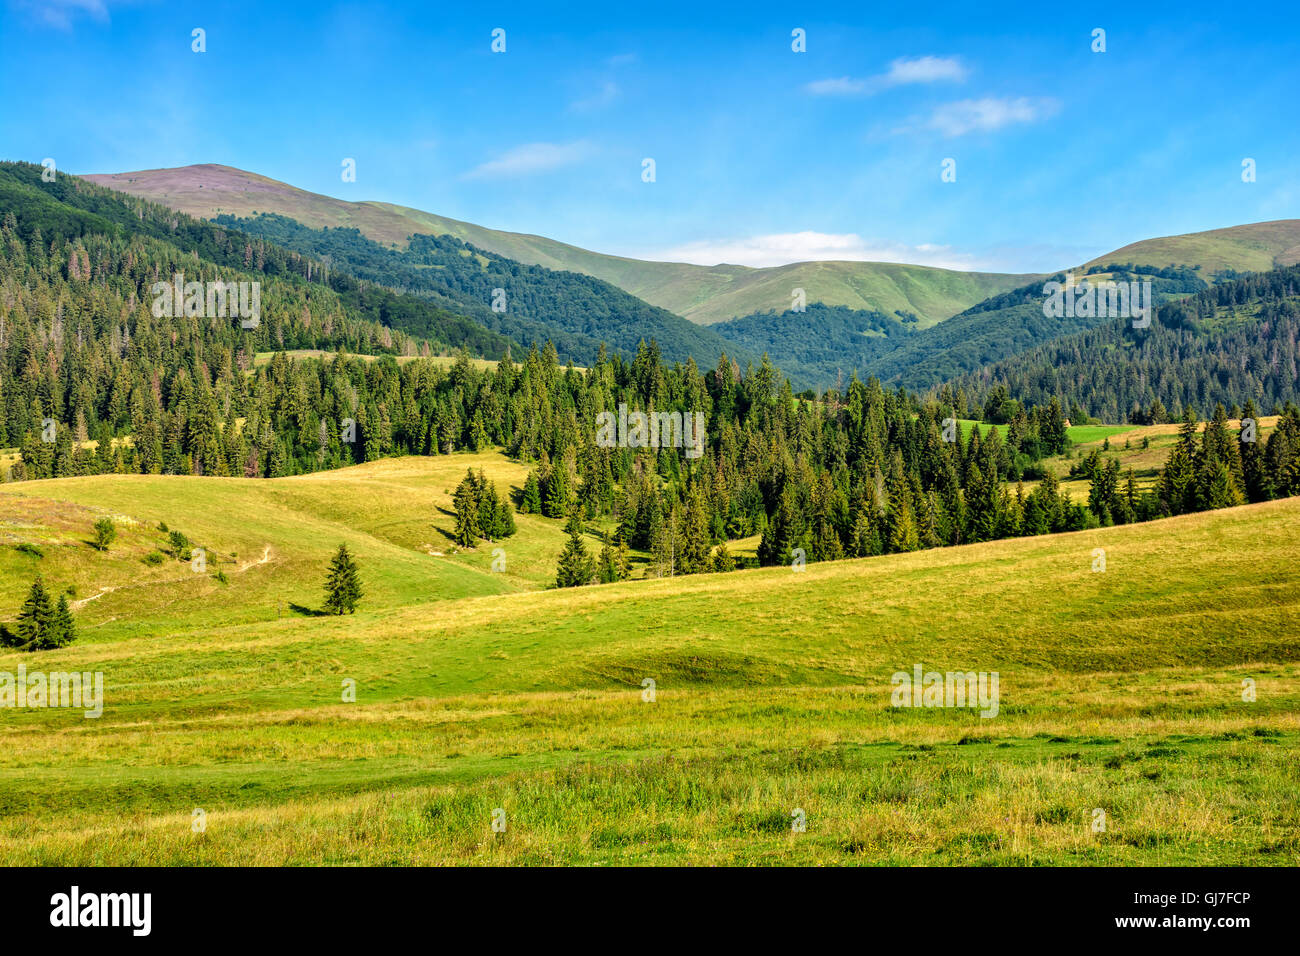 summer landscape with meadow near the spruce forest on hills in mountain area - Stock Image